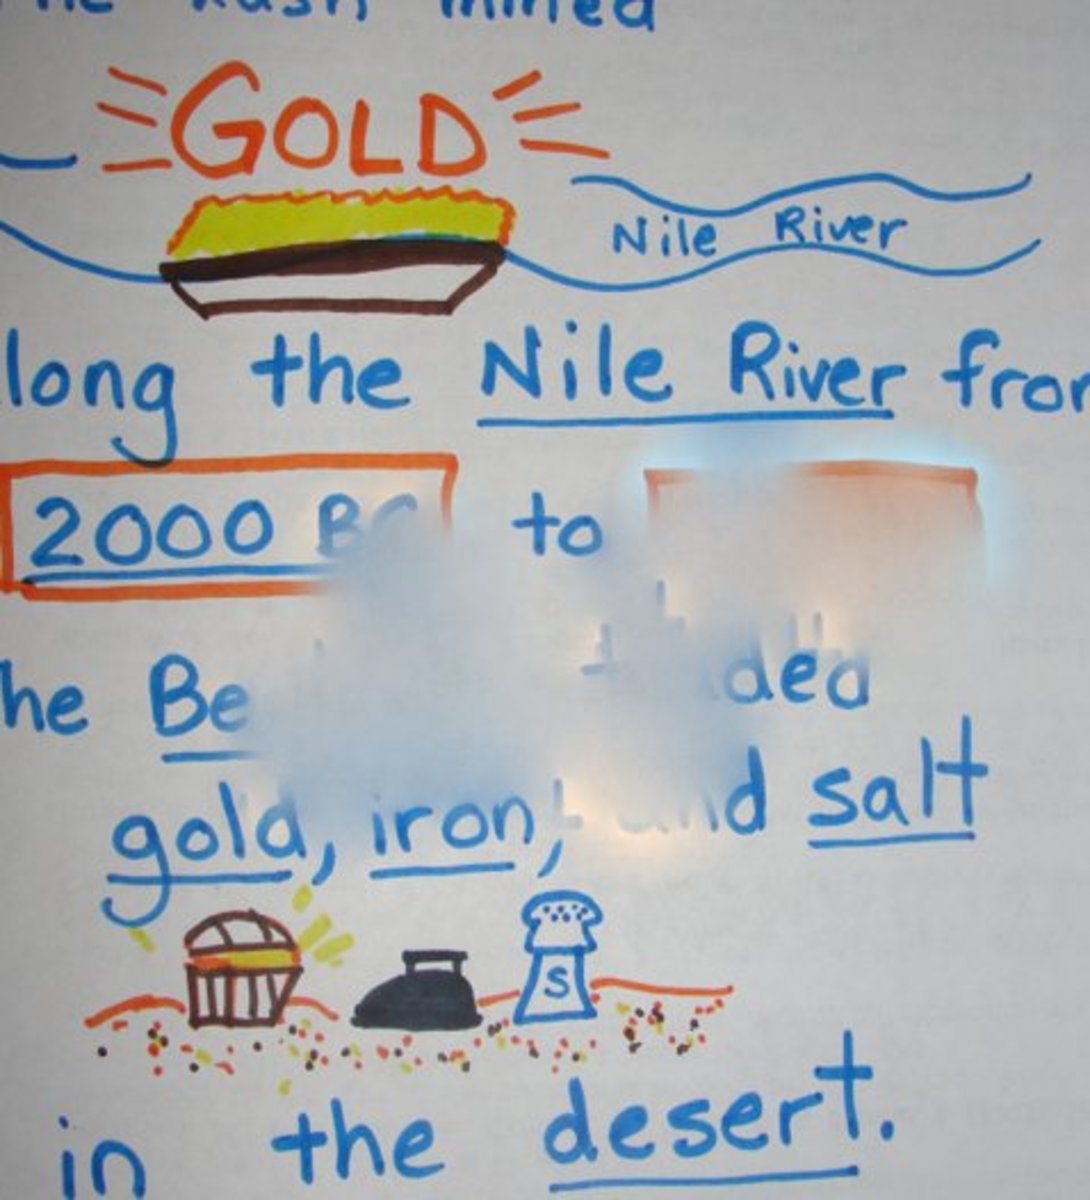 This is an example of how I sometimes add pictures to the board as one more new grammar tool for the class. I blurred out some of this photo so the complete CC sentence isn't showing.